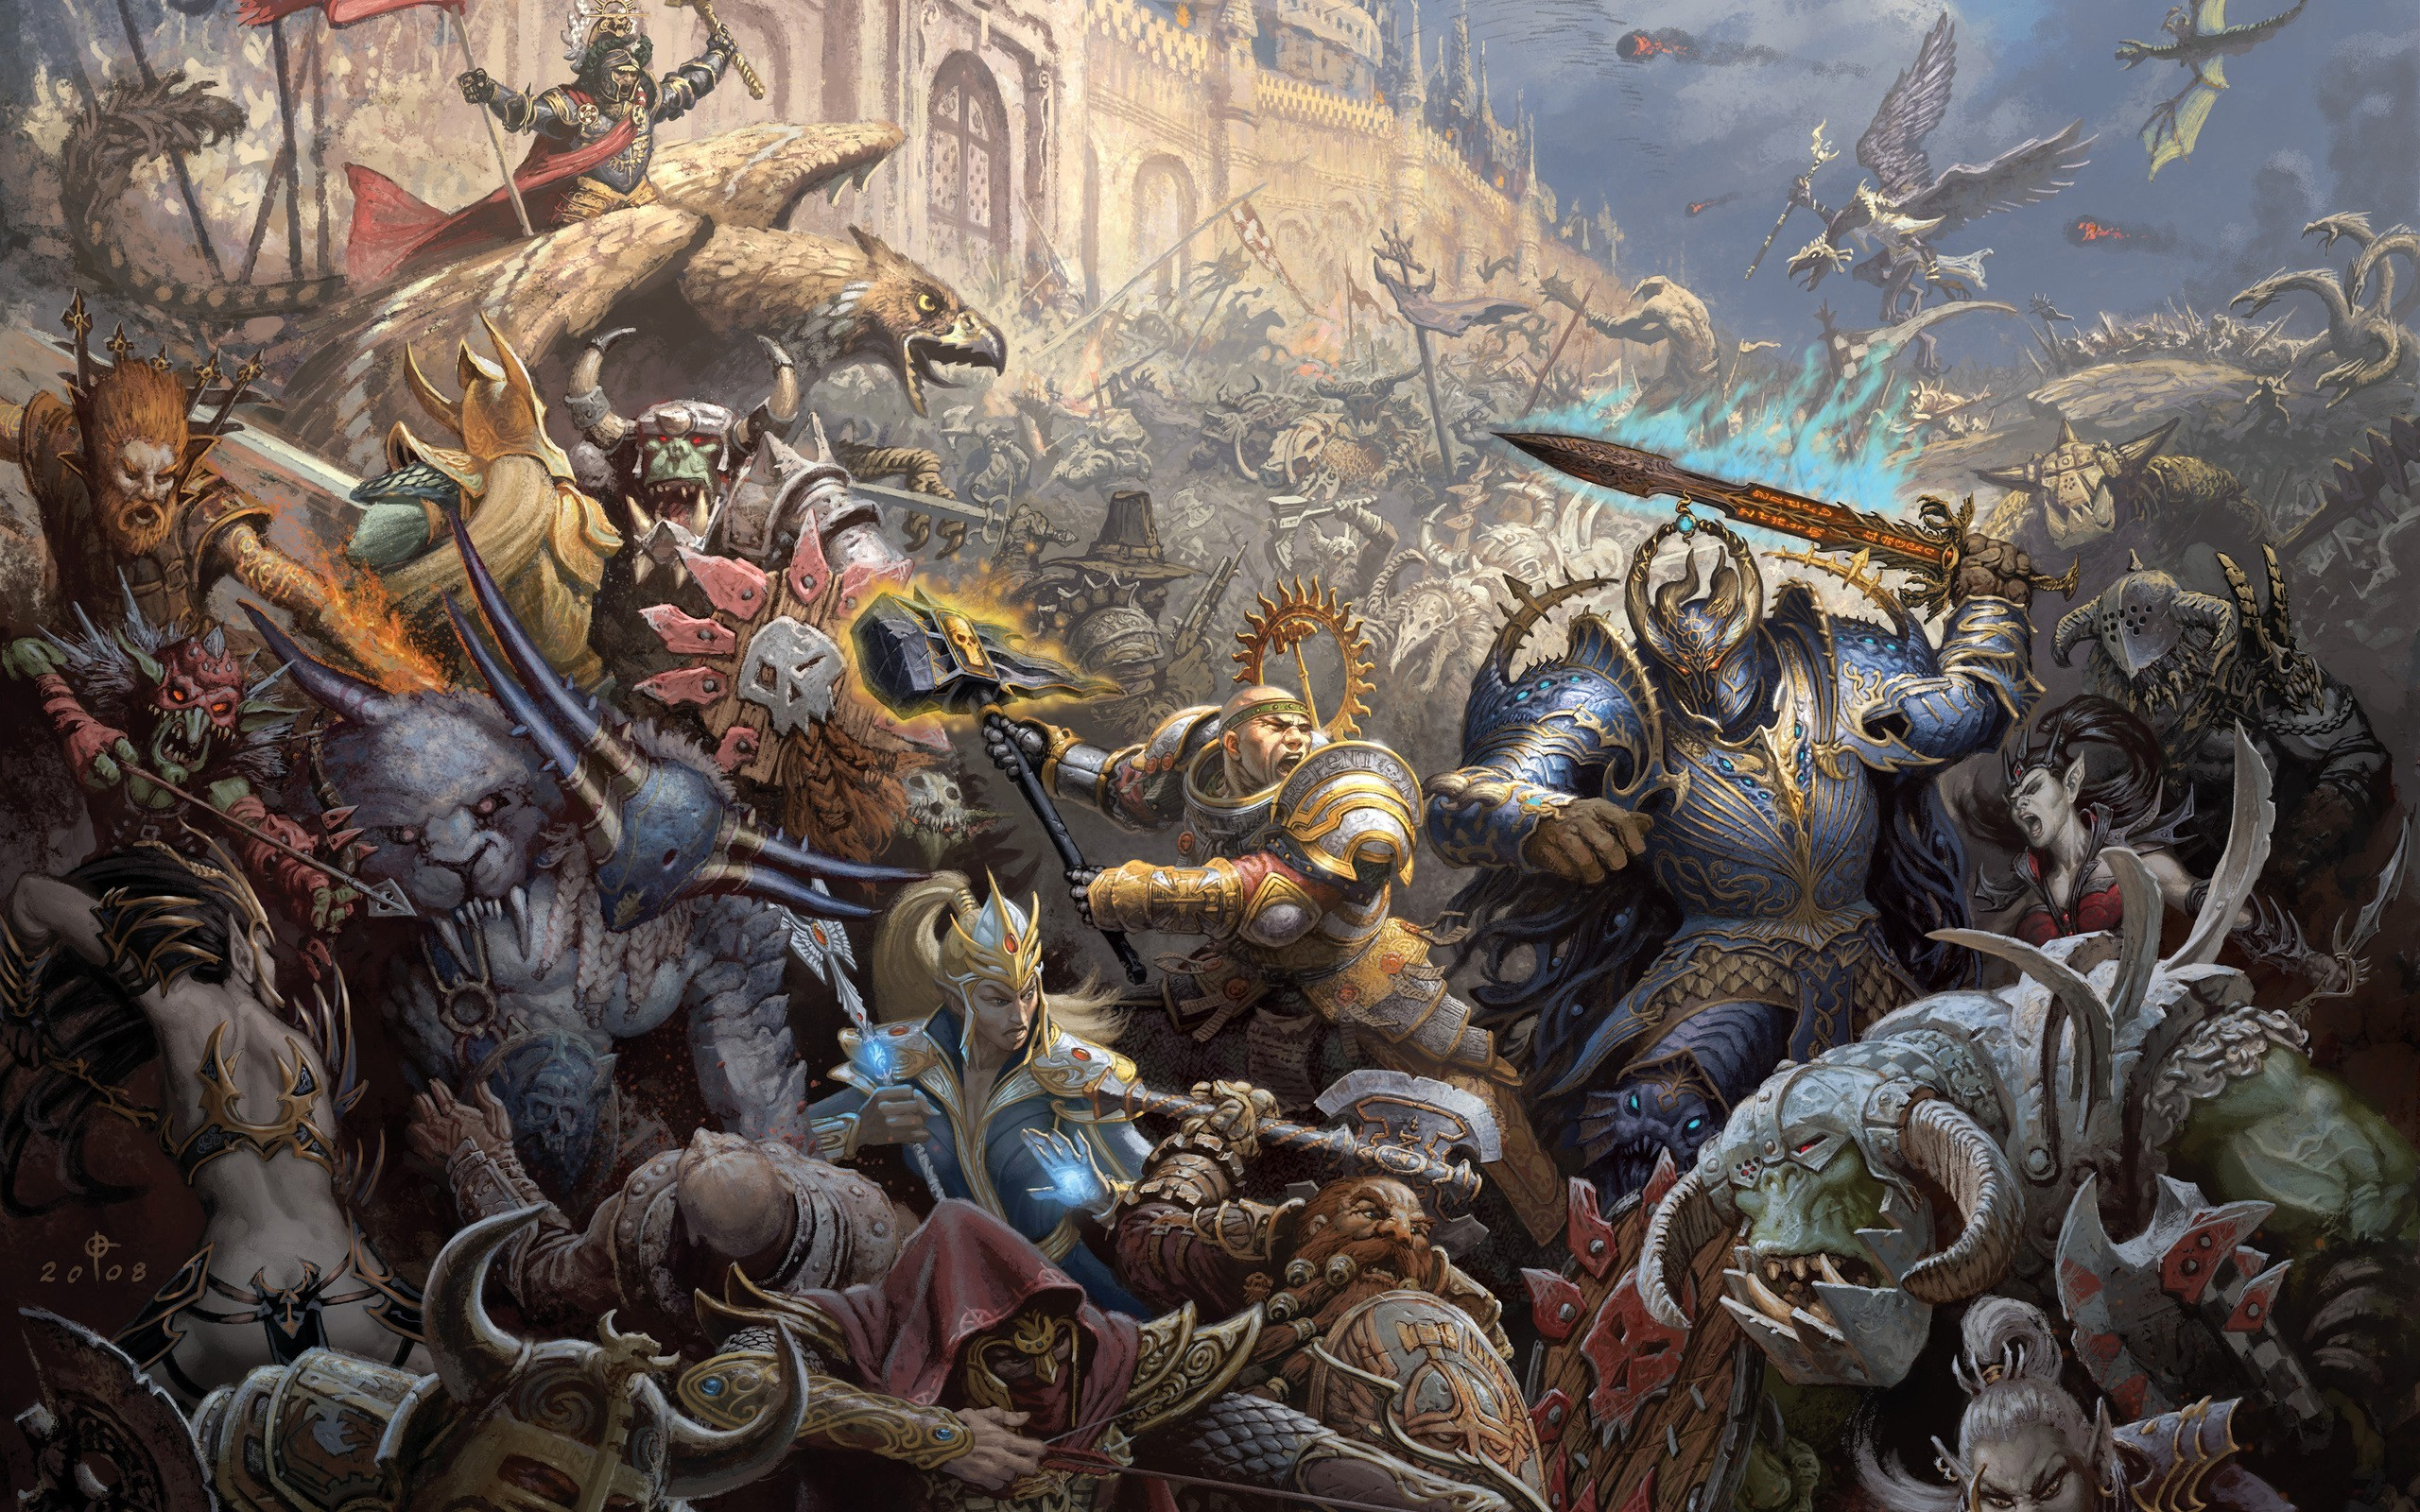 dwarfs battles Orcs artwork HD Wallpaper